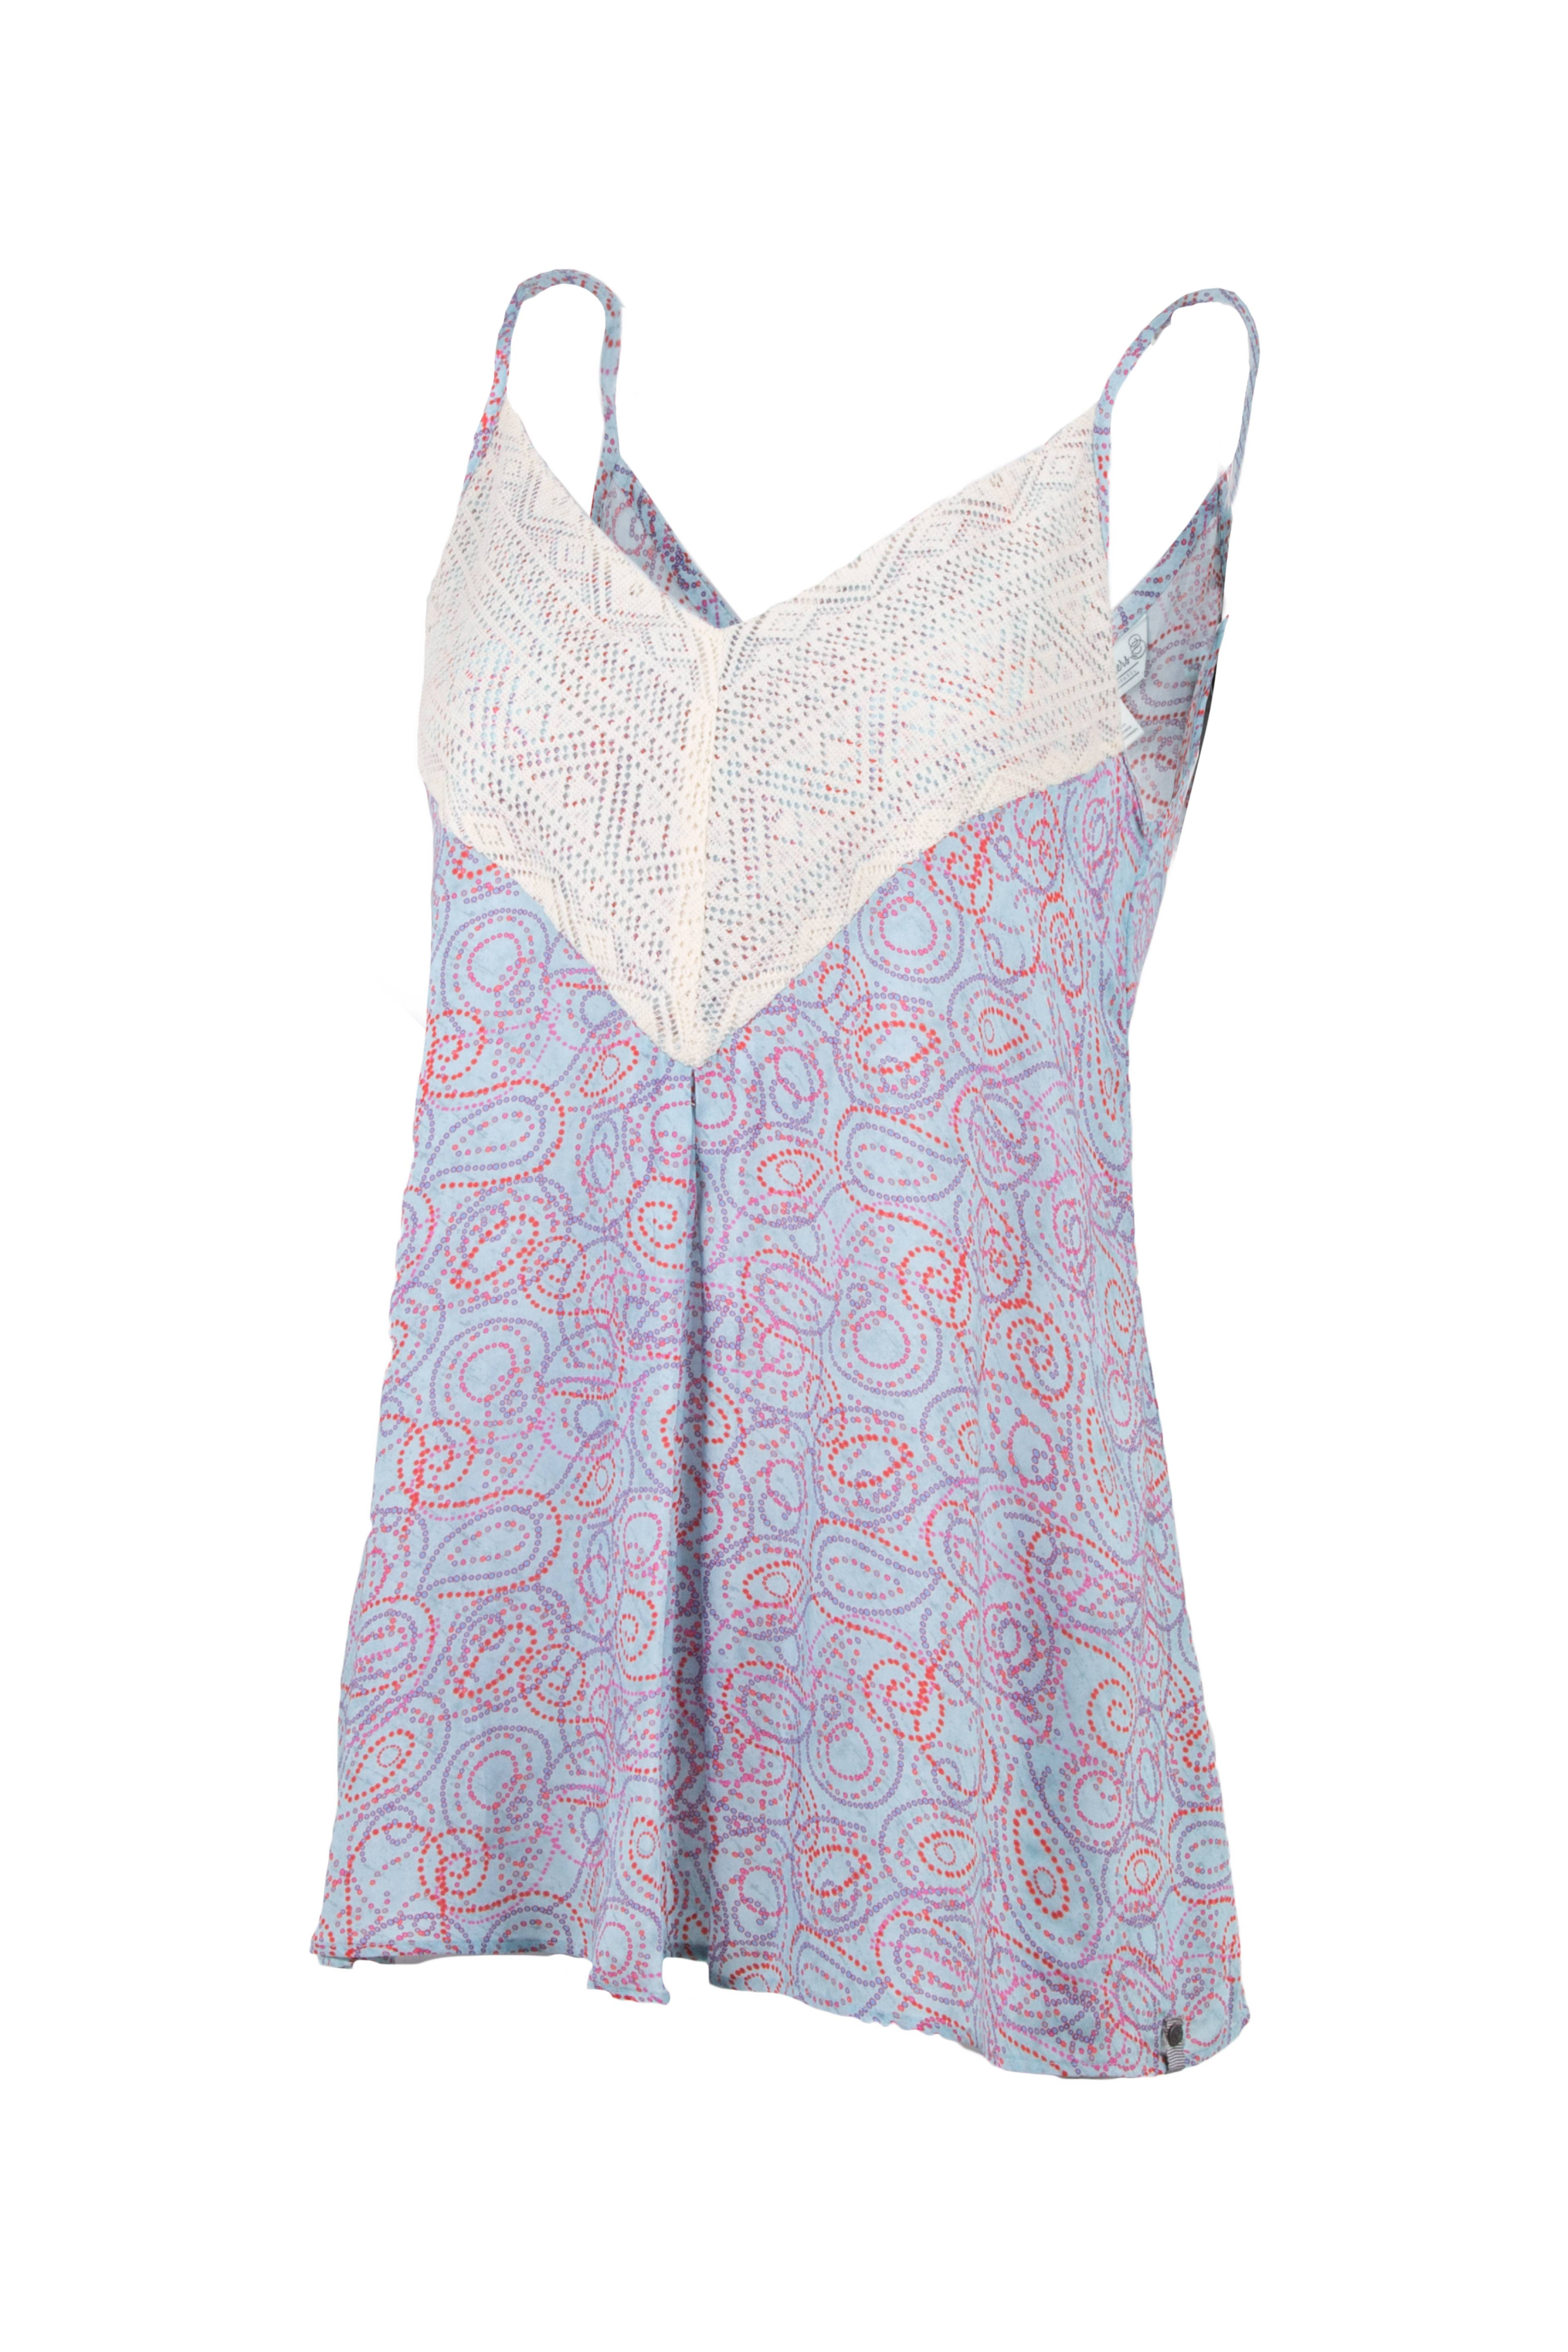 Noble Outfitters Peyton Tank - Ladies